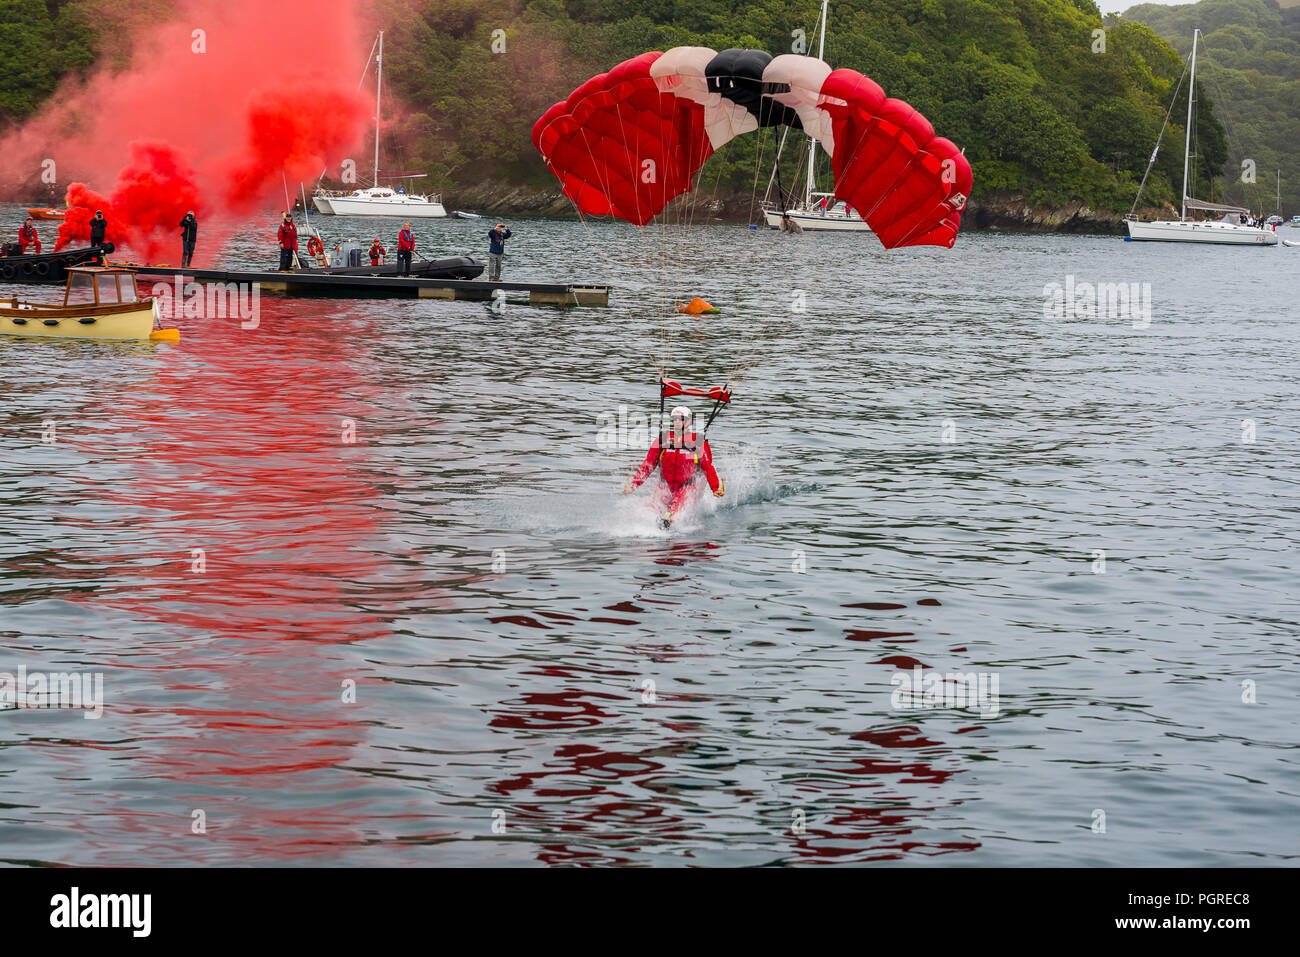 24/08/2018, Fowey, Cornwall, UK. Parachute diplay team The Red Devils make a low level jump into the Fowey River estuary at The Fowey Royal Regatta - Stock Image